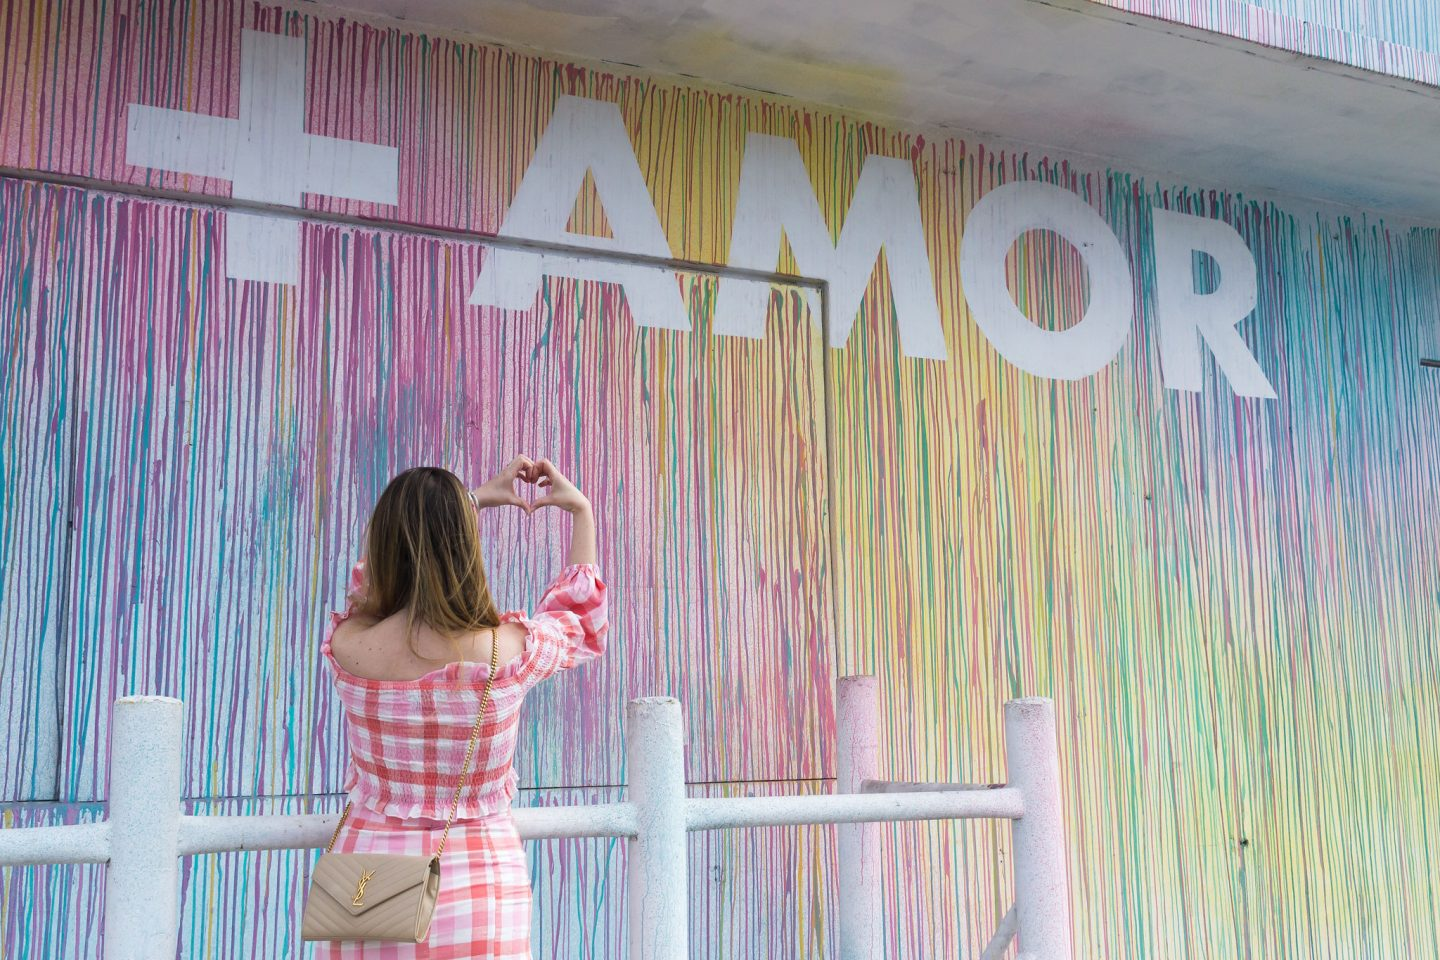 7 Steps To Dress Like A Millionaire Without Spending Much Money, suboo, SUBOO Sundown Shirred Cropped Top & Mini Skirt, suboo matching set, pink matching set, pink matching crop top set, louboutin white boots, white boots, wynwood walls, miami wynwood walls